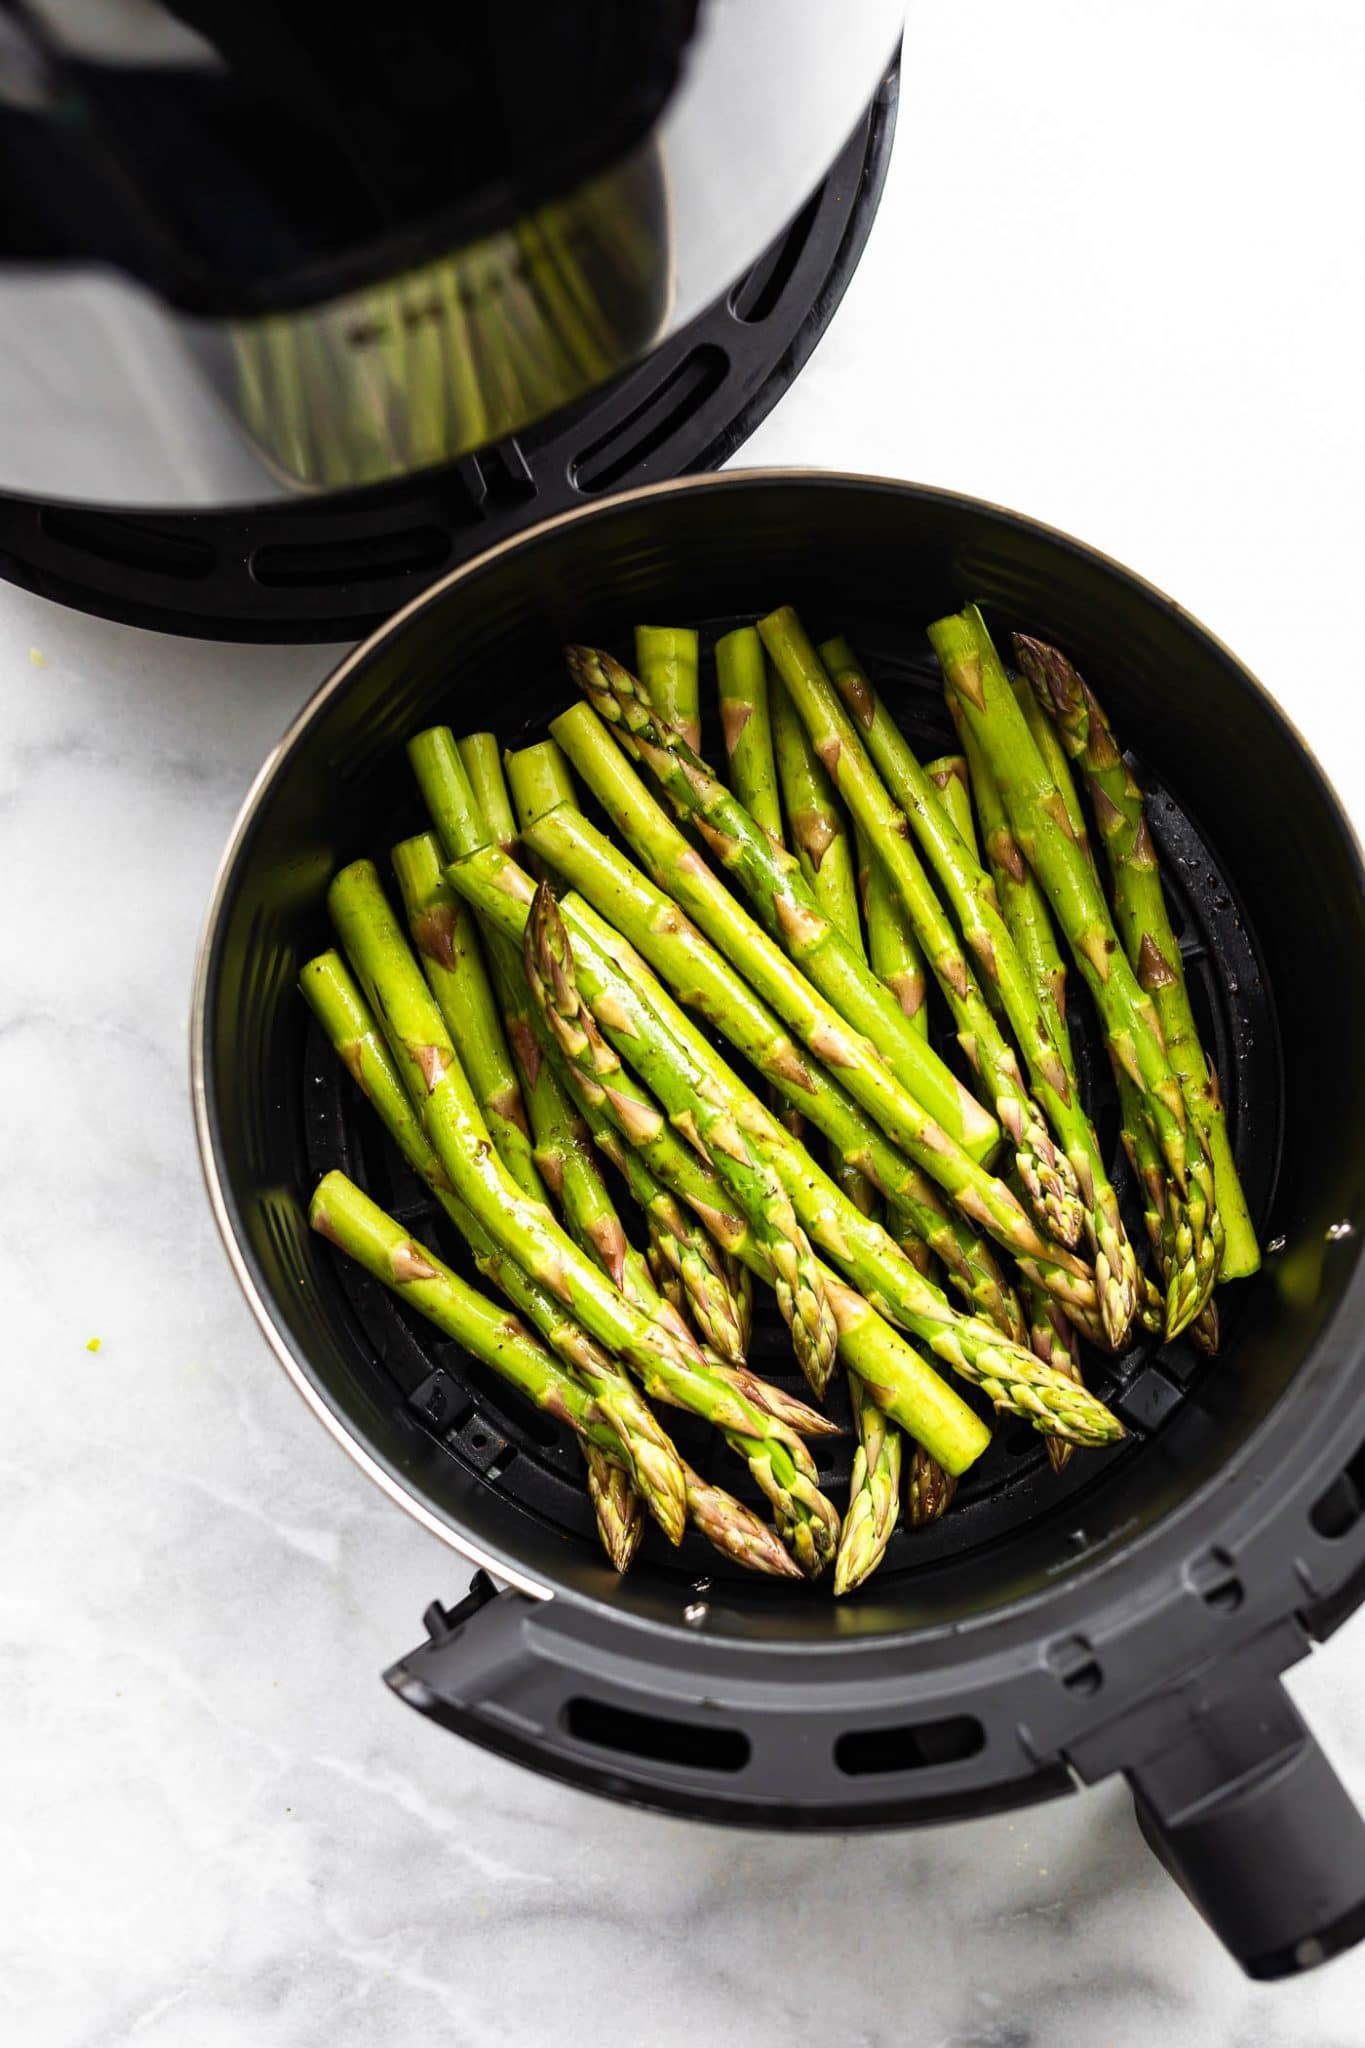 uncooked asparagus in air fryer